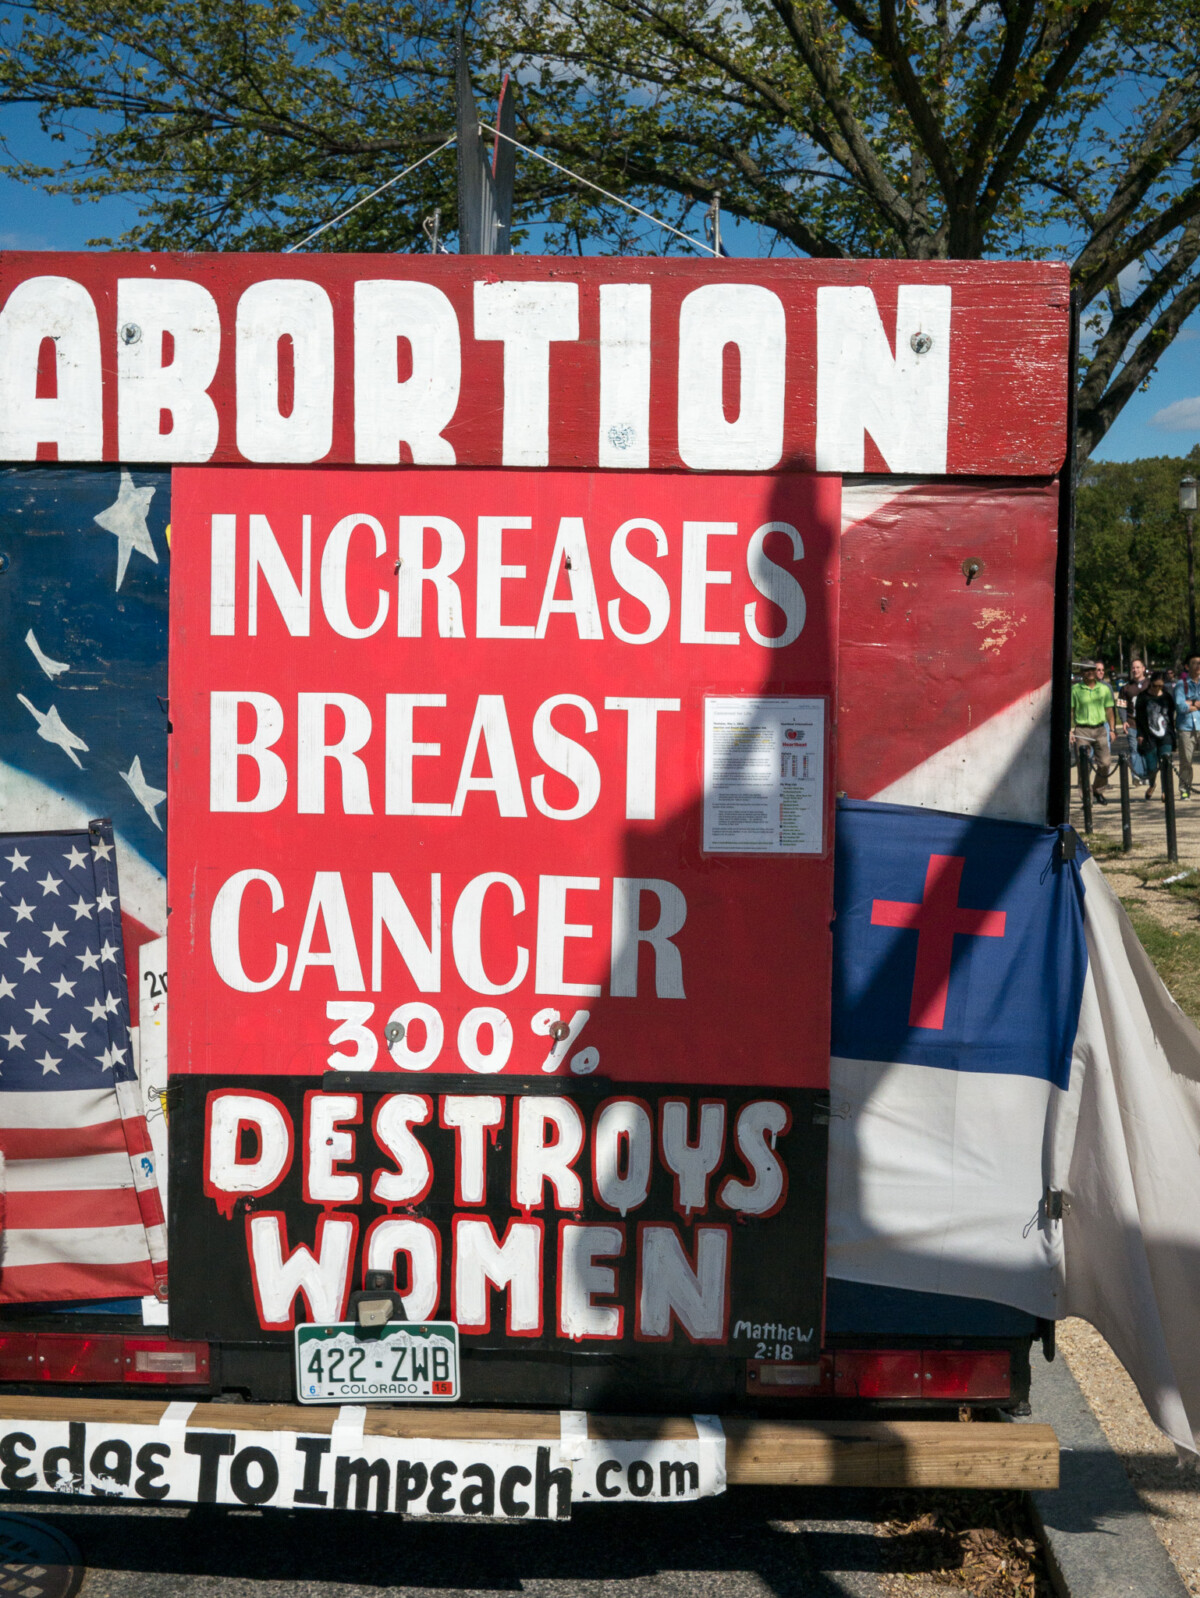 Abortion Increases Breast Cancer 300%